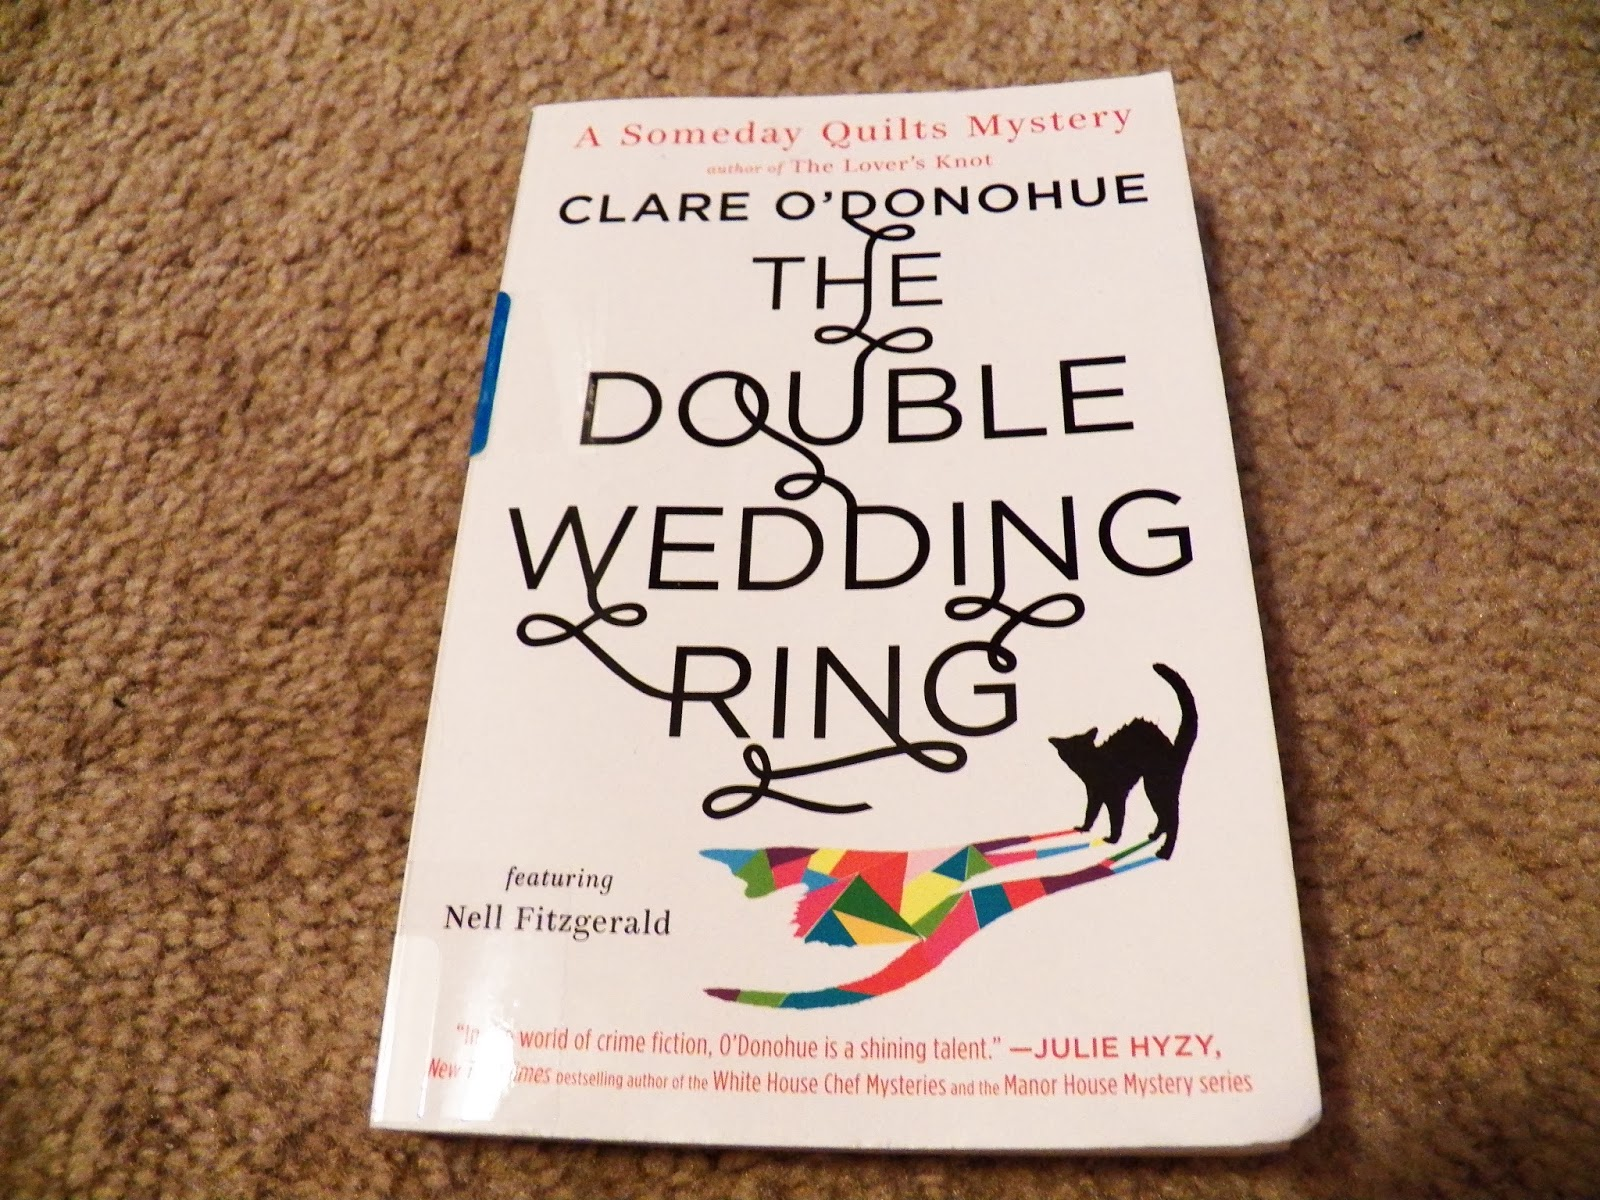 http://www.amazon.com/The-Double-Wedding-Ring-Fitzgerald/dp/0452298792